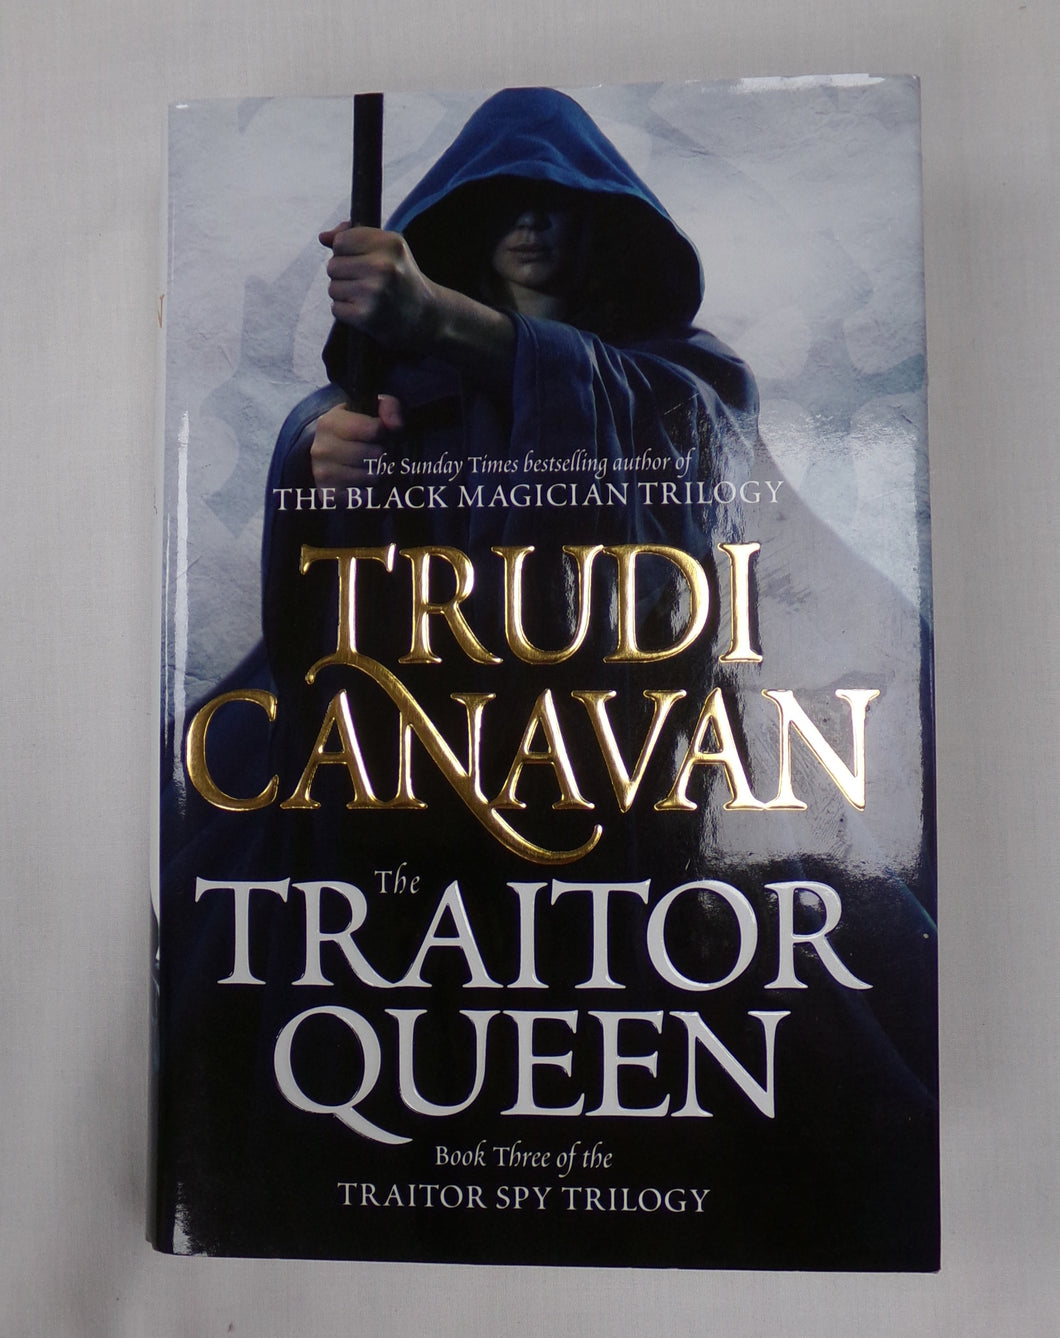 The Traitor Queen by Trudi Canavan. Hardback Book Published by Orbit.  ISBN - 9781841495958